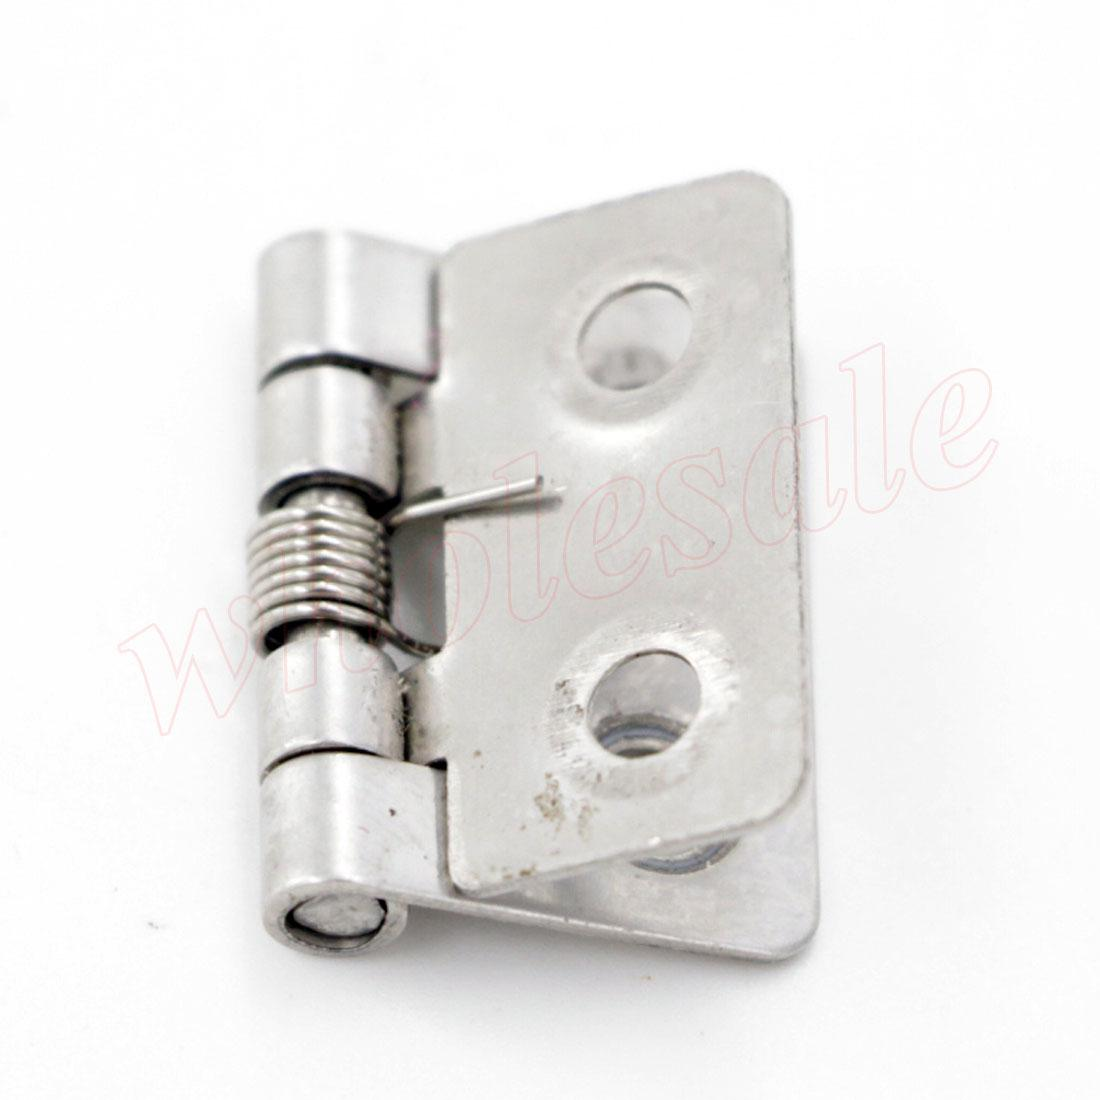 2017 Butt Door Hinges Stainless Steel Spring Loaded 33 X 25 X 5mm Hinges Cabinet Closet